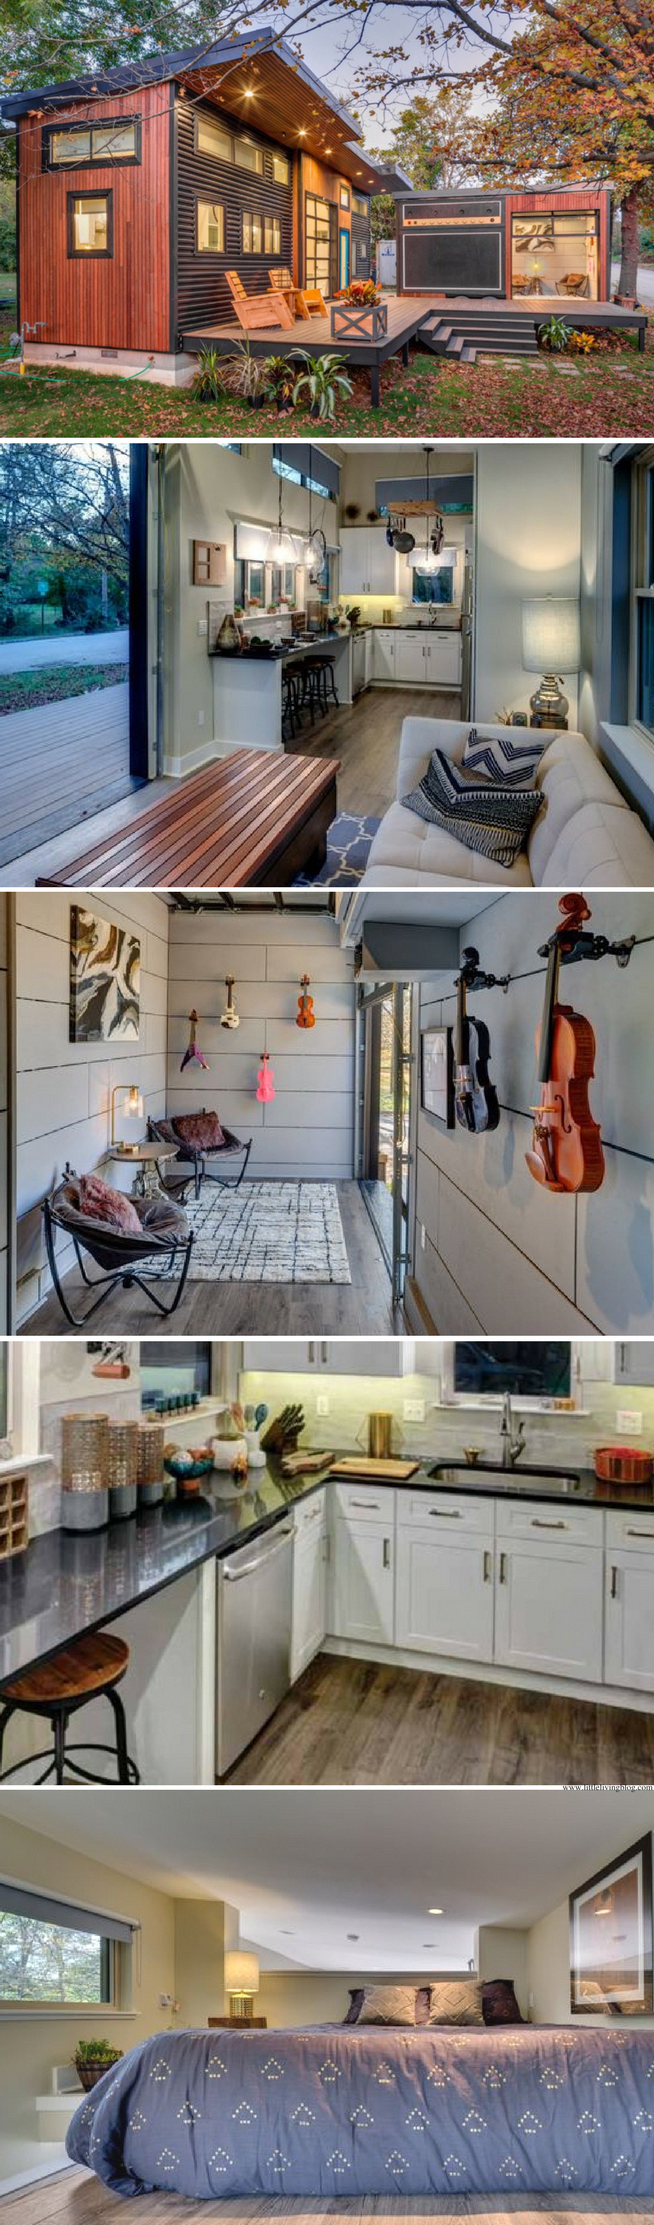 I would replace the studio with a small pub style hang out